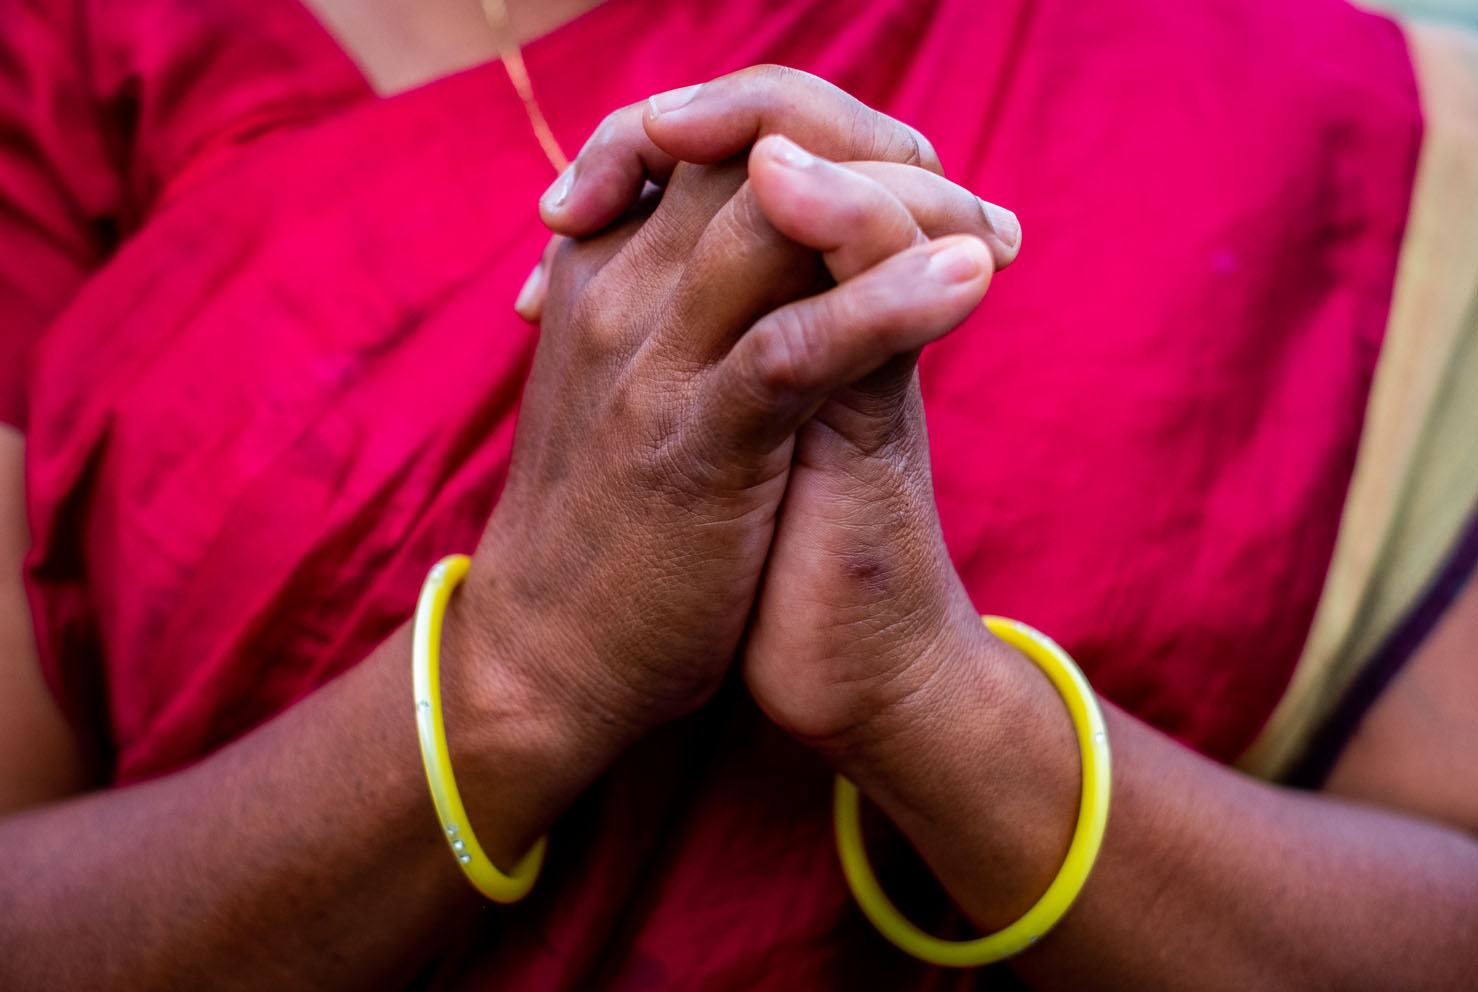 A widow in Kandhamal, India, folds her hands in prayer. During the Summer of 2008 a mob of Hindu nationalists aligned with the BJP party murdered her husband before her eyes for their Christian faith. After 10 years, she, along with other widows who faced the same fate, still gather together to encourage each other and worship Jesus Christ together. Kandhamal, India. 2018